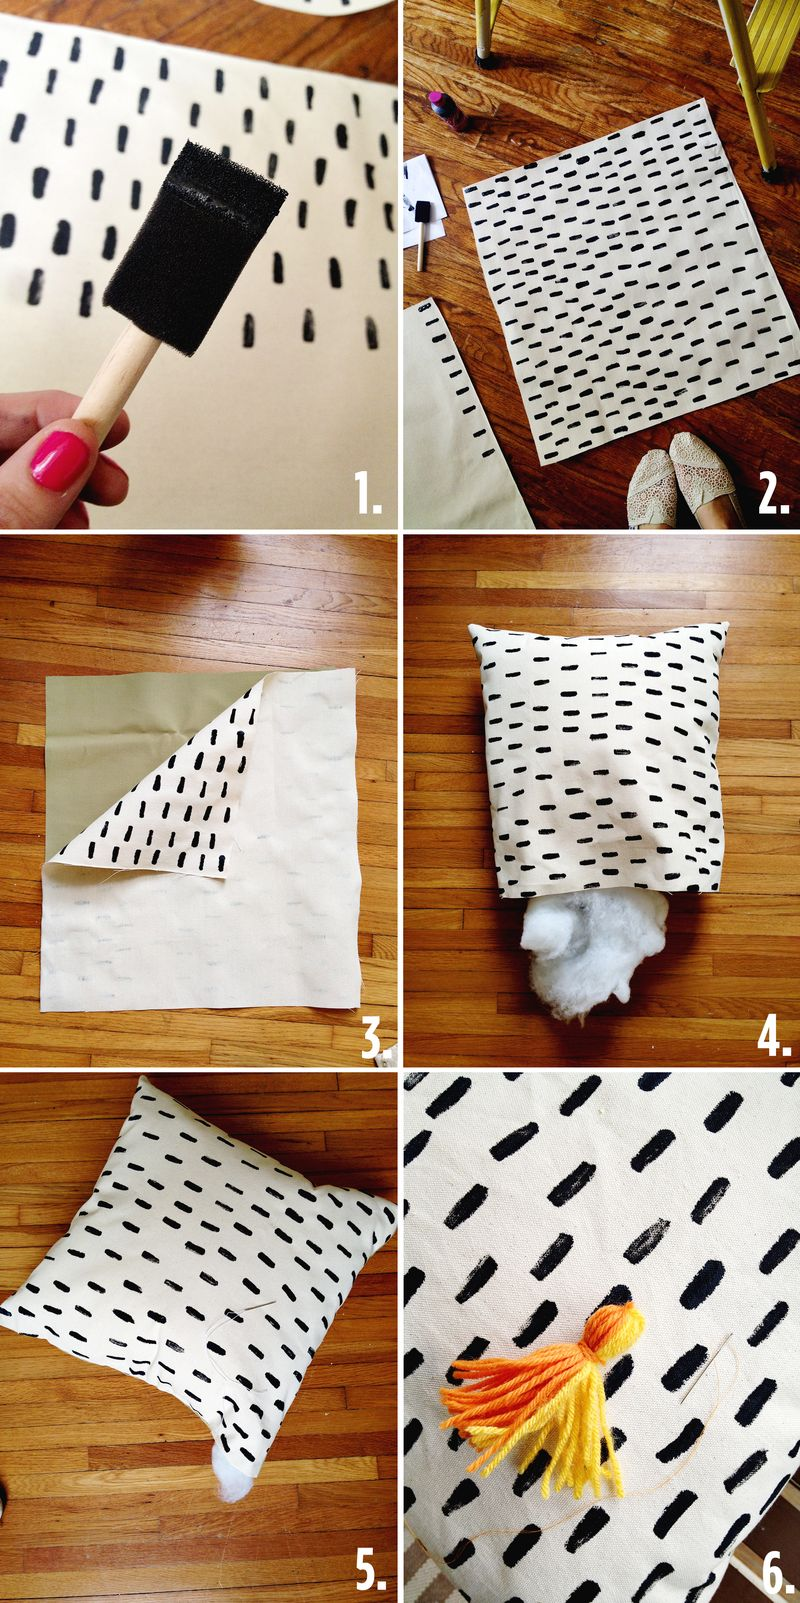 Easy Patterned Pillow Instructions